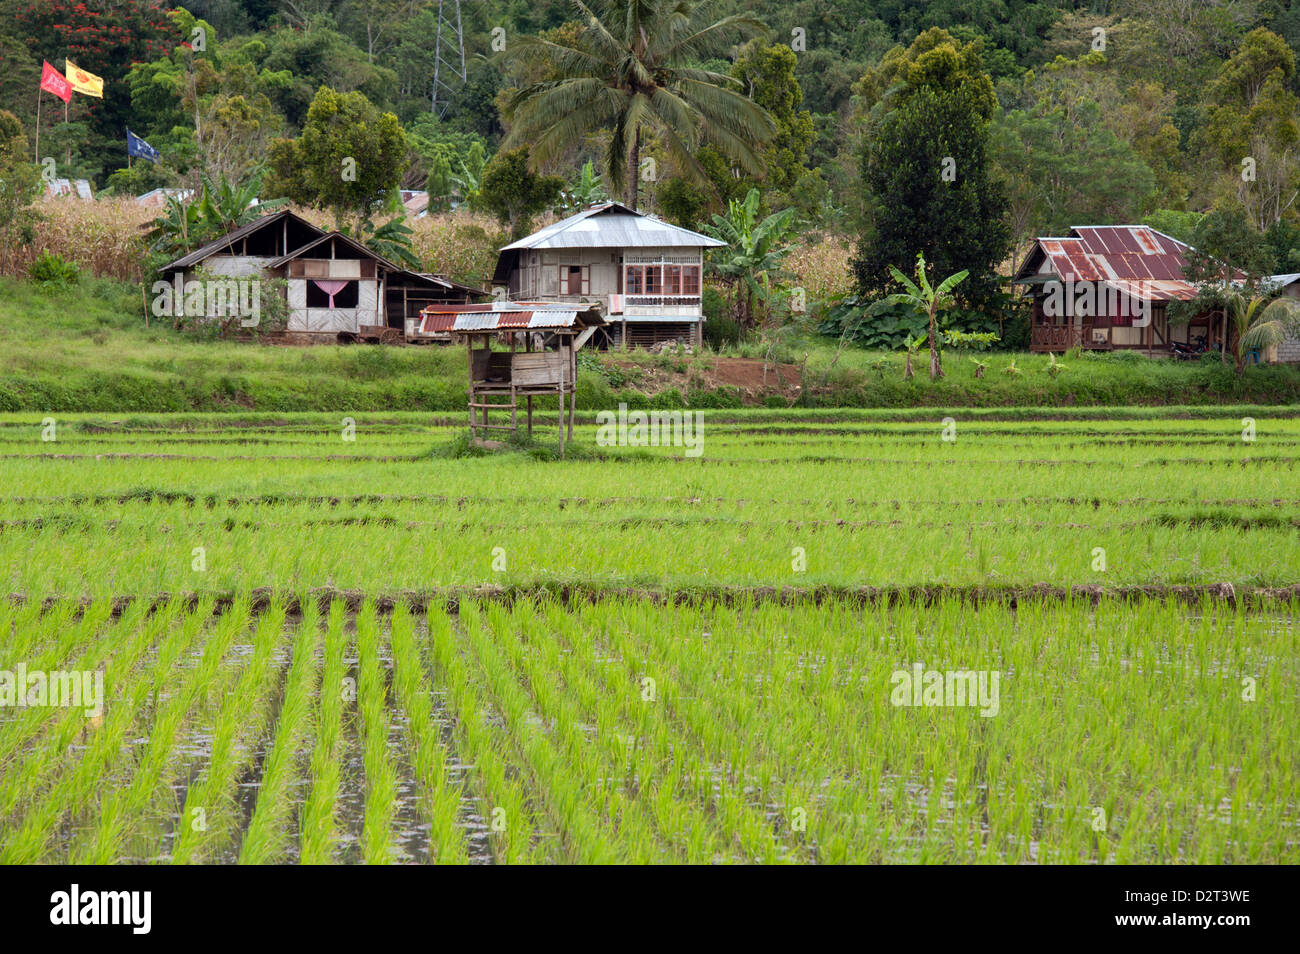 Rice paddy field, Sulawesi, Indonesia, Southeast Asia, Asia - Stock Image